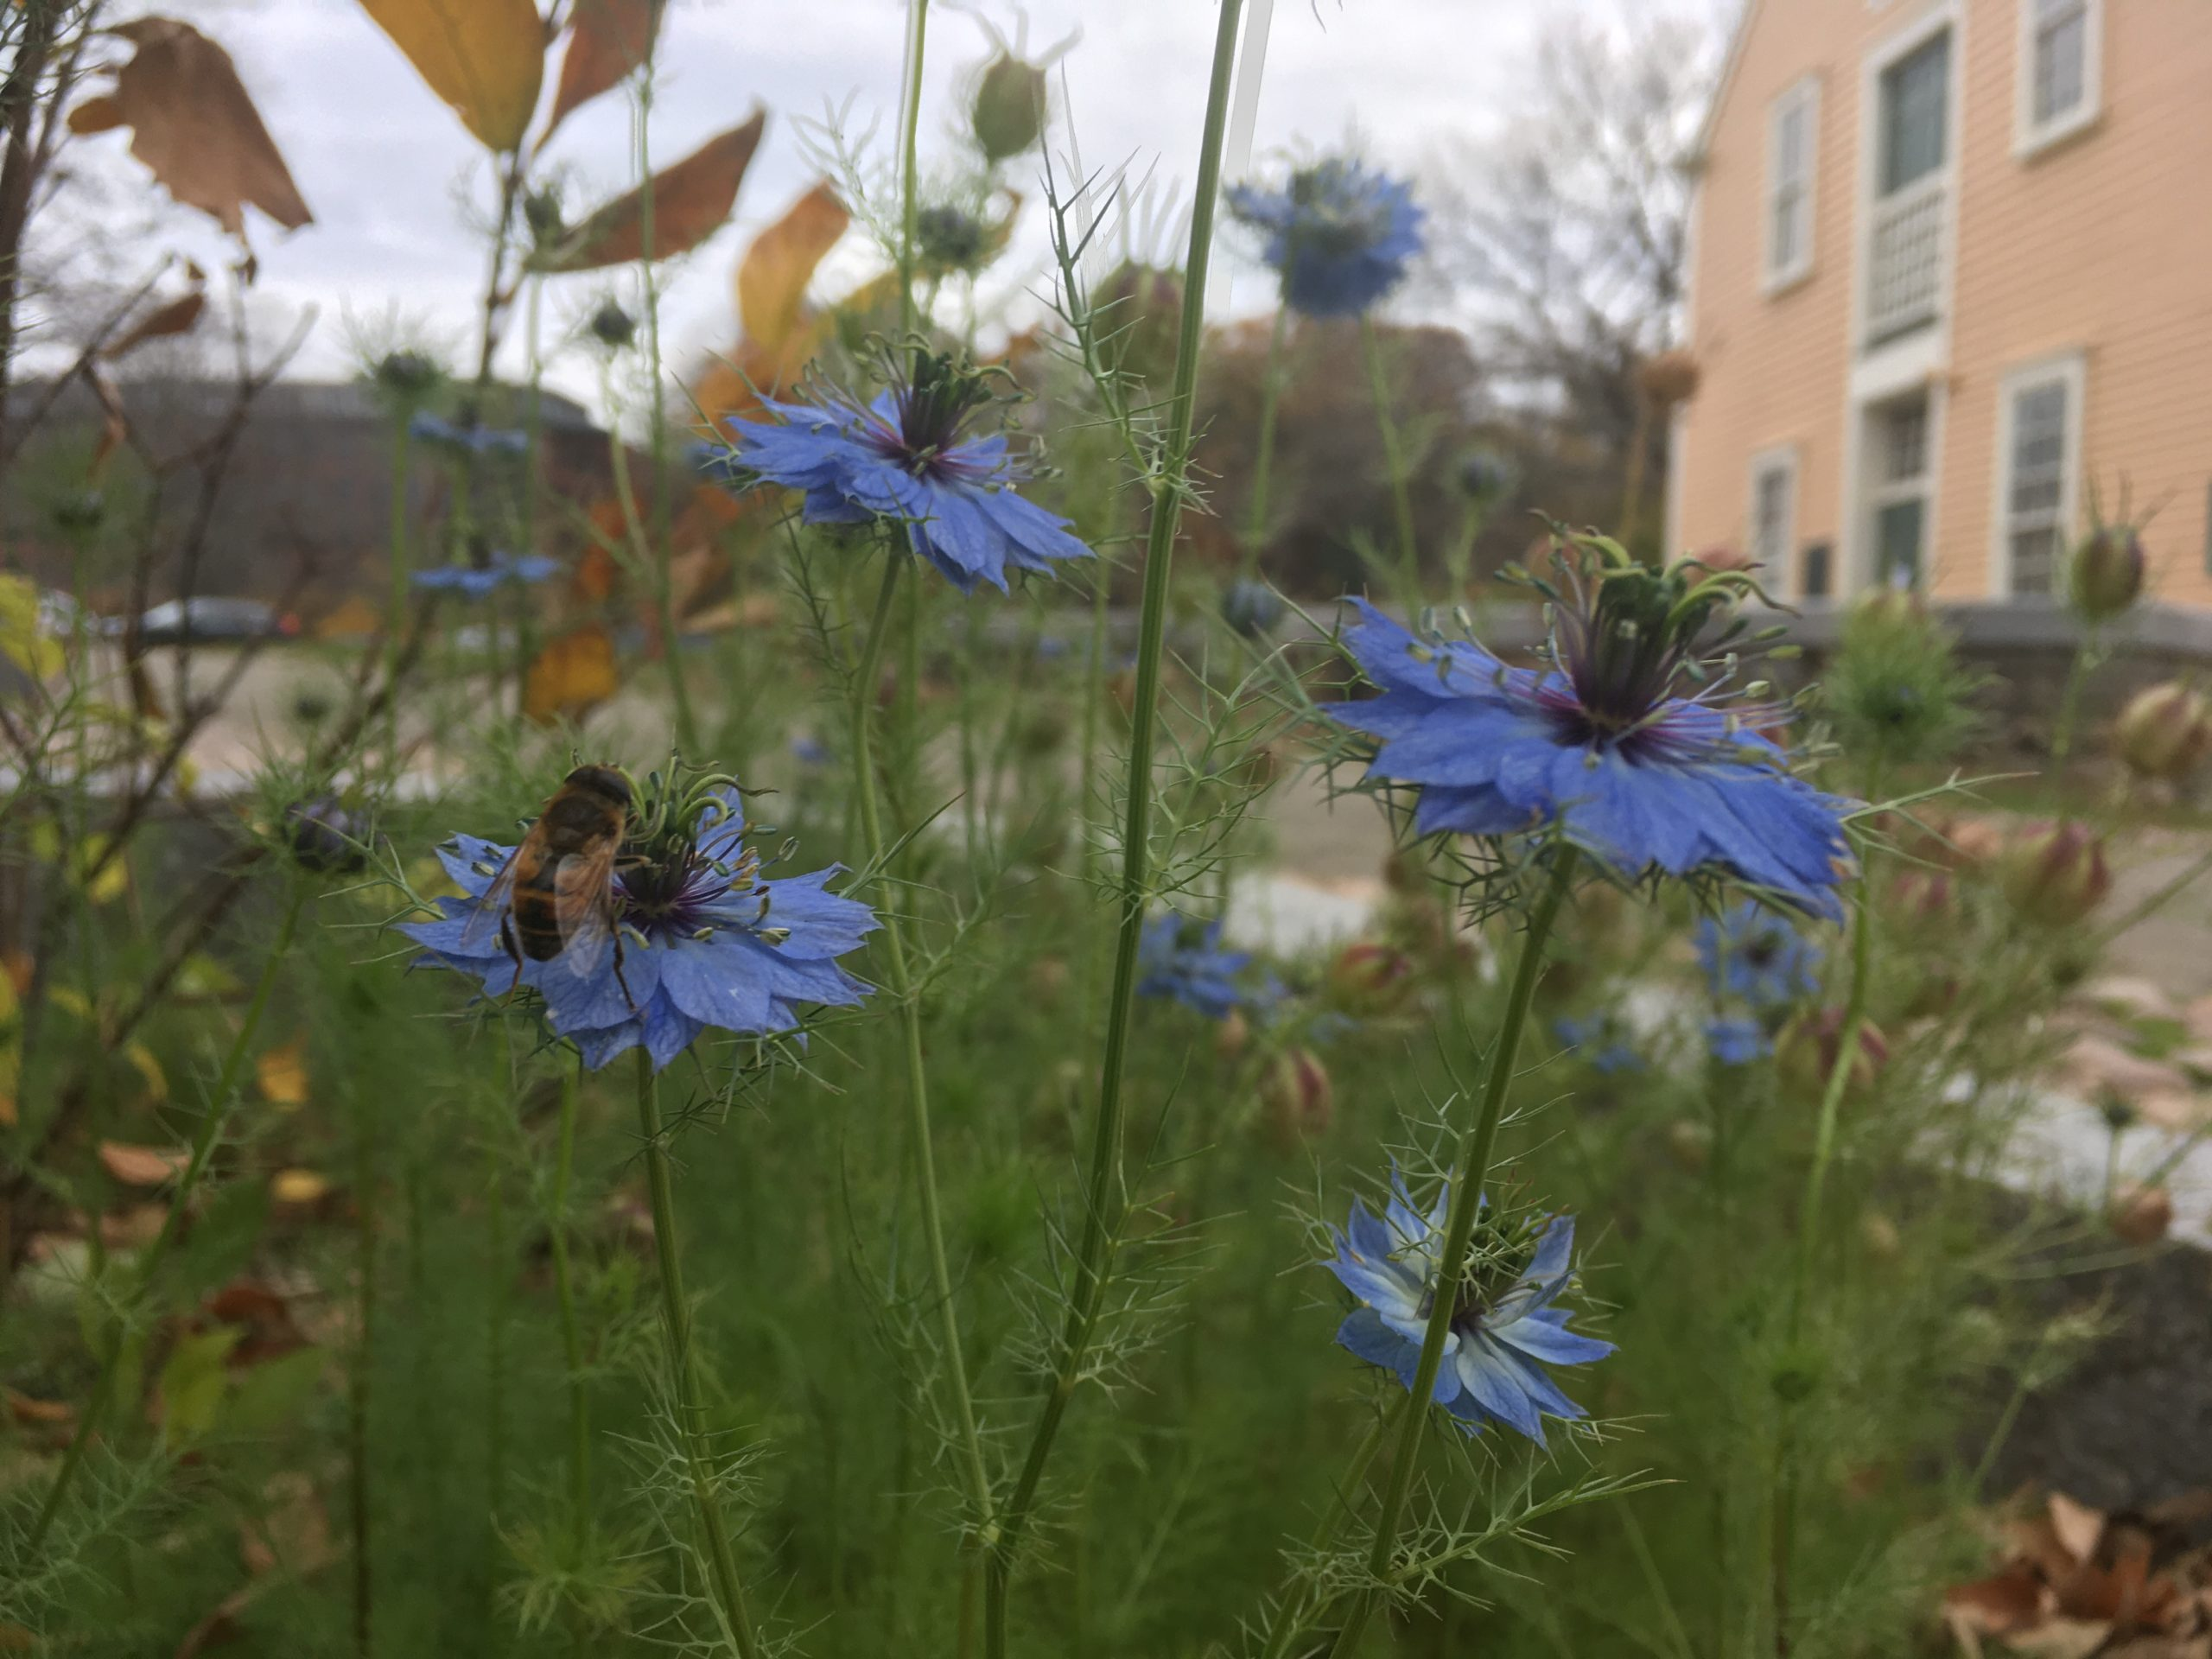 Pollinators love the garden at the Old Slater Mill Historic site in Pawtucket, RI. - photo by Josh Bell